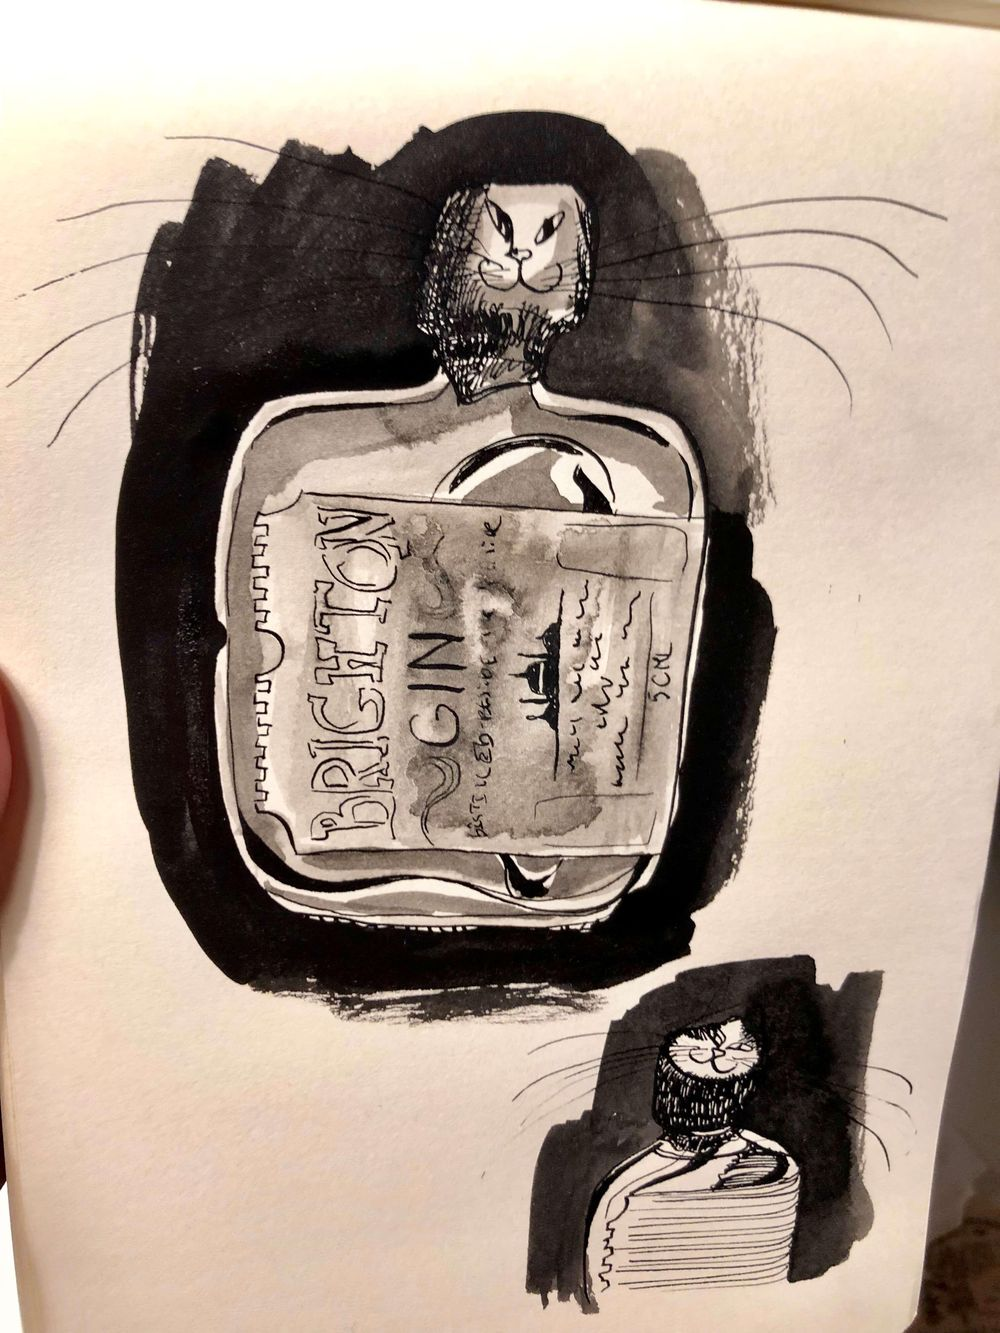 First experiments with ink :3 - image 1 - student project